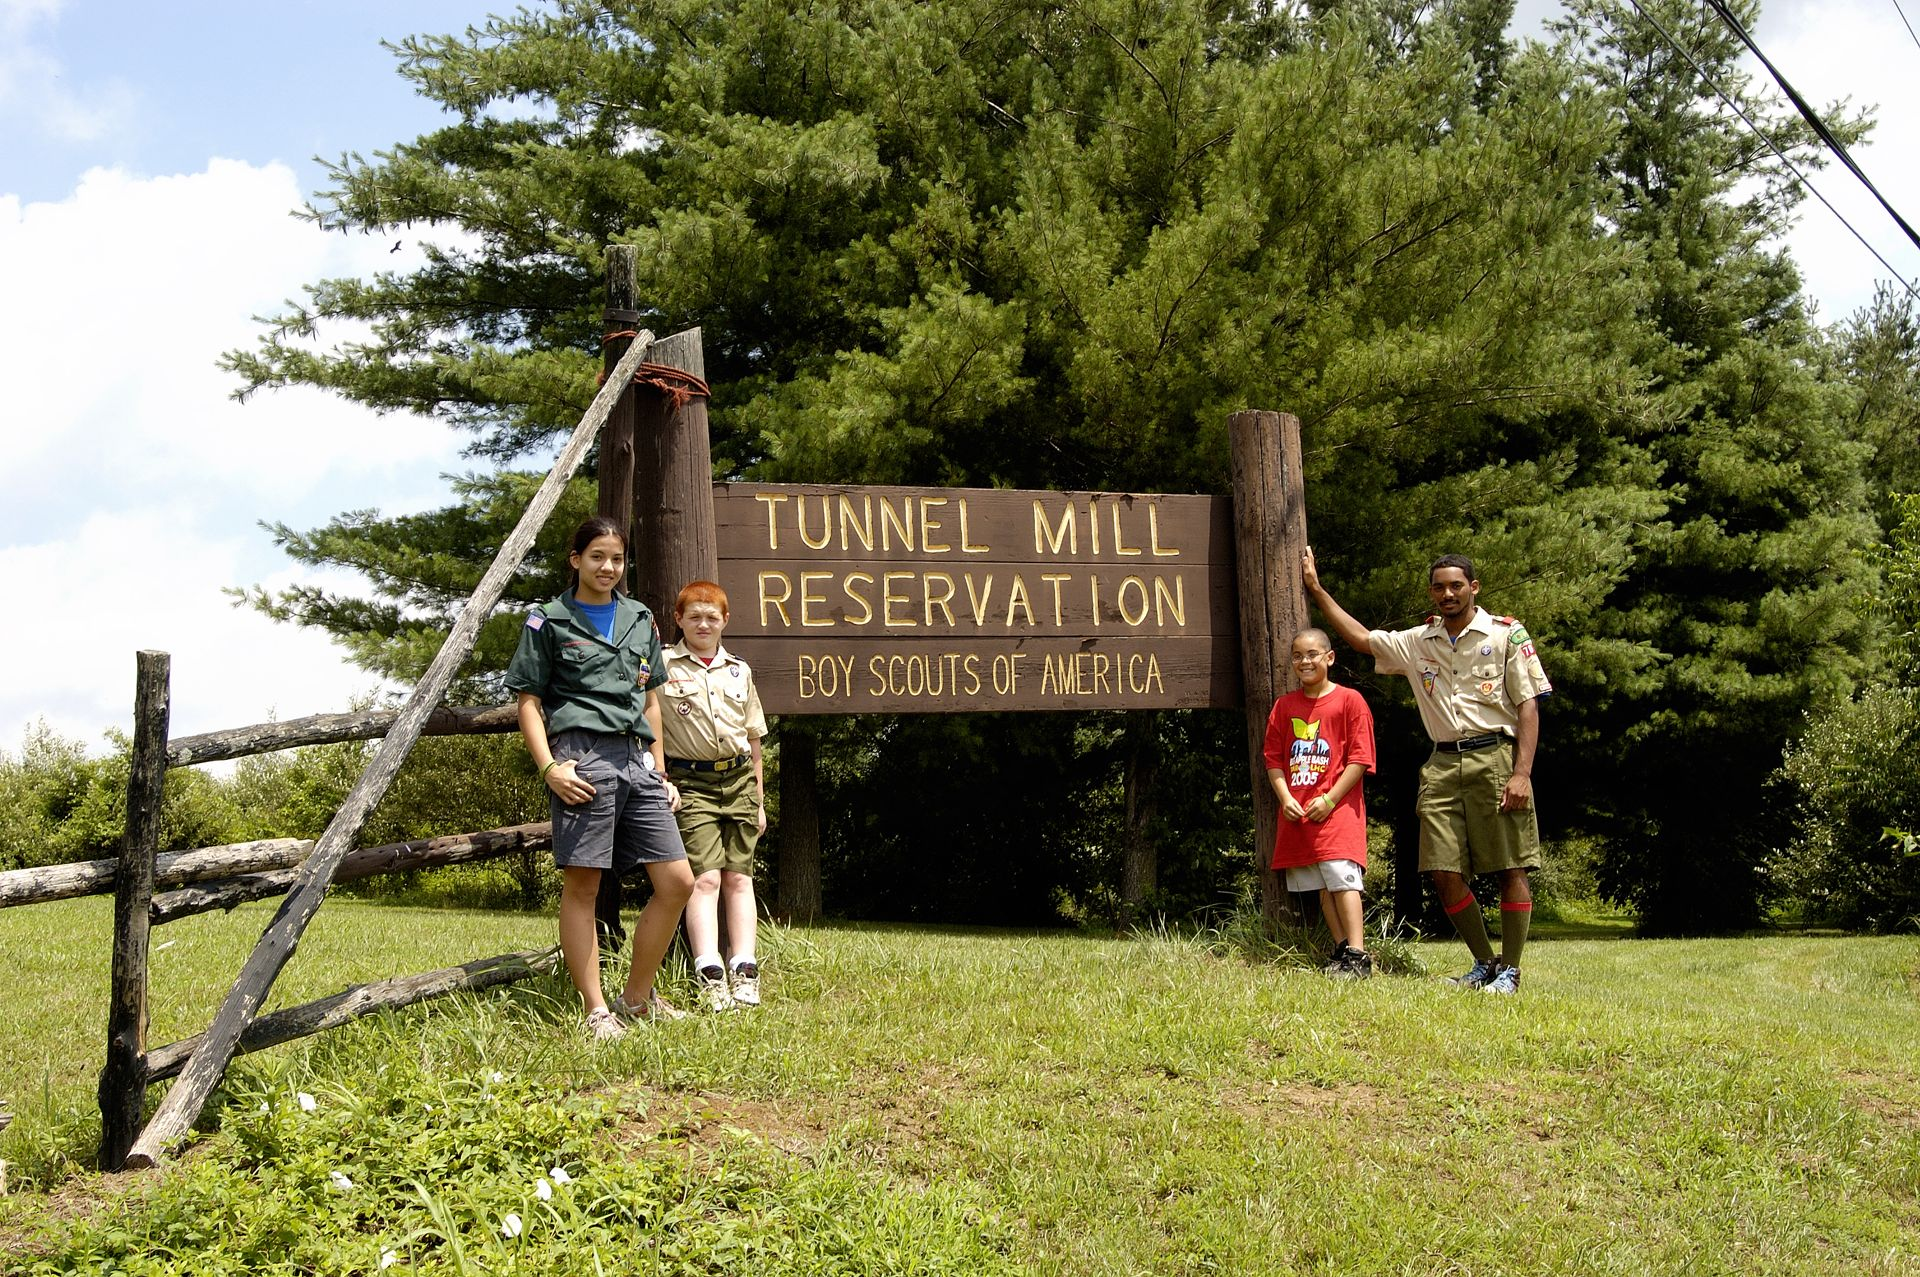 Tunnel Mill Scout Reservation image